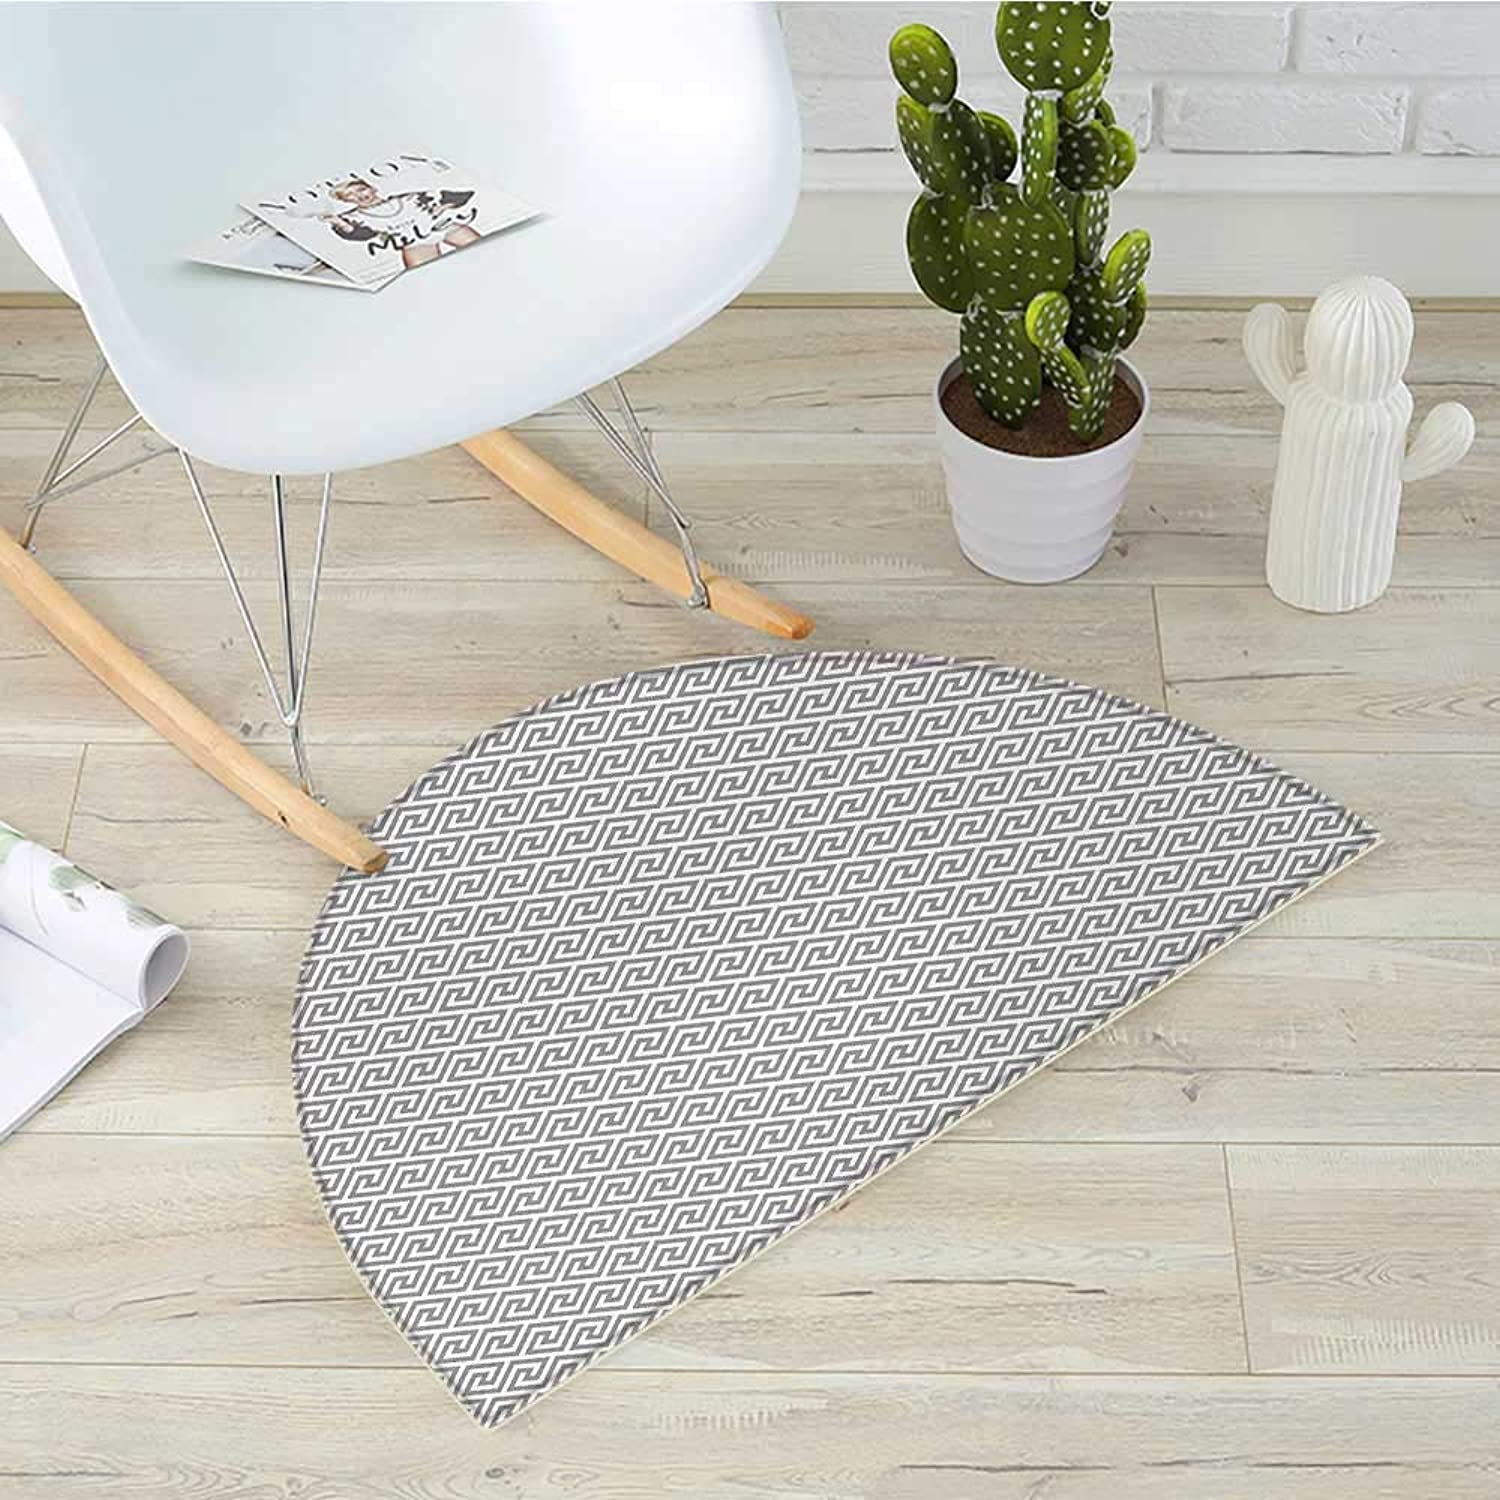 Greek Key Semicircle Doormat Geometric Lines Abstract Pattern with Antique Motif in Grey Labyrinth Maze Halfmoon doormats H 31.5  xD 47.2  Pale Grey White